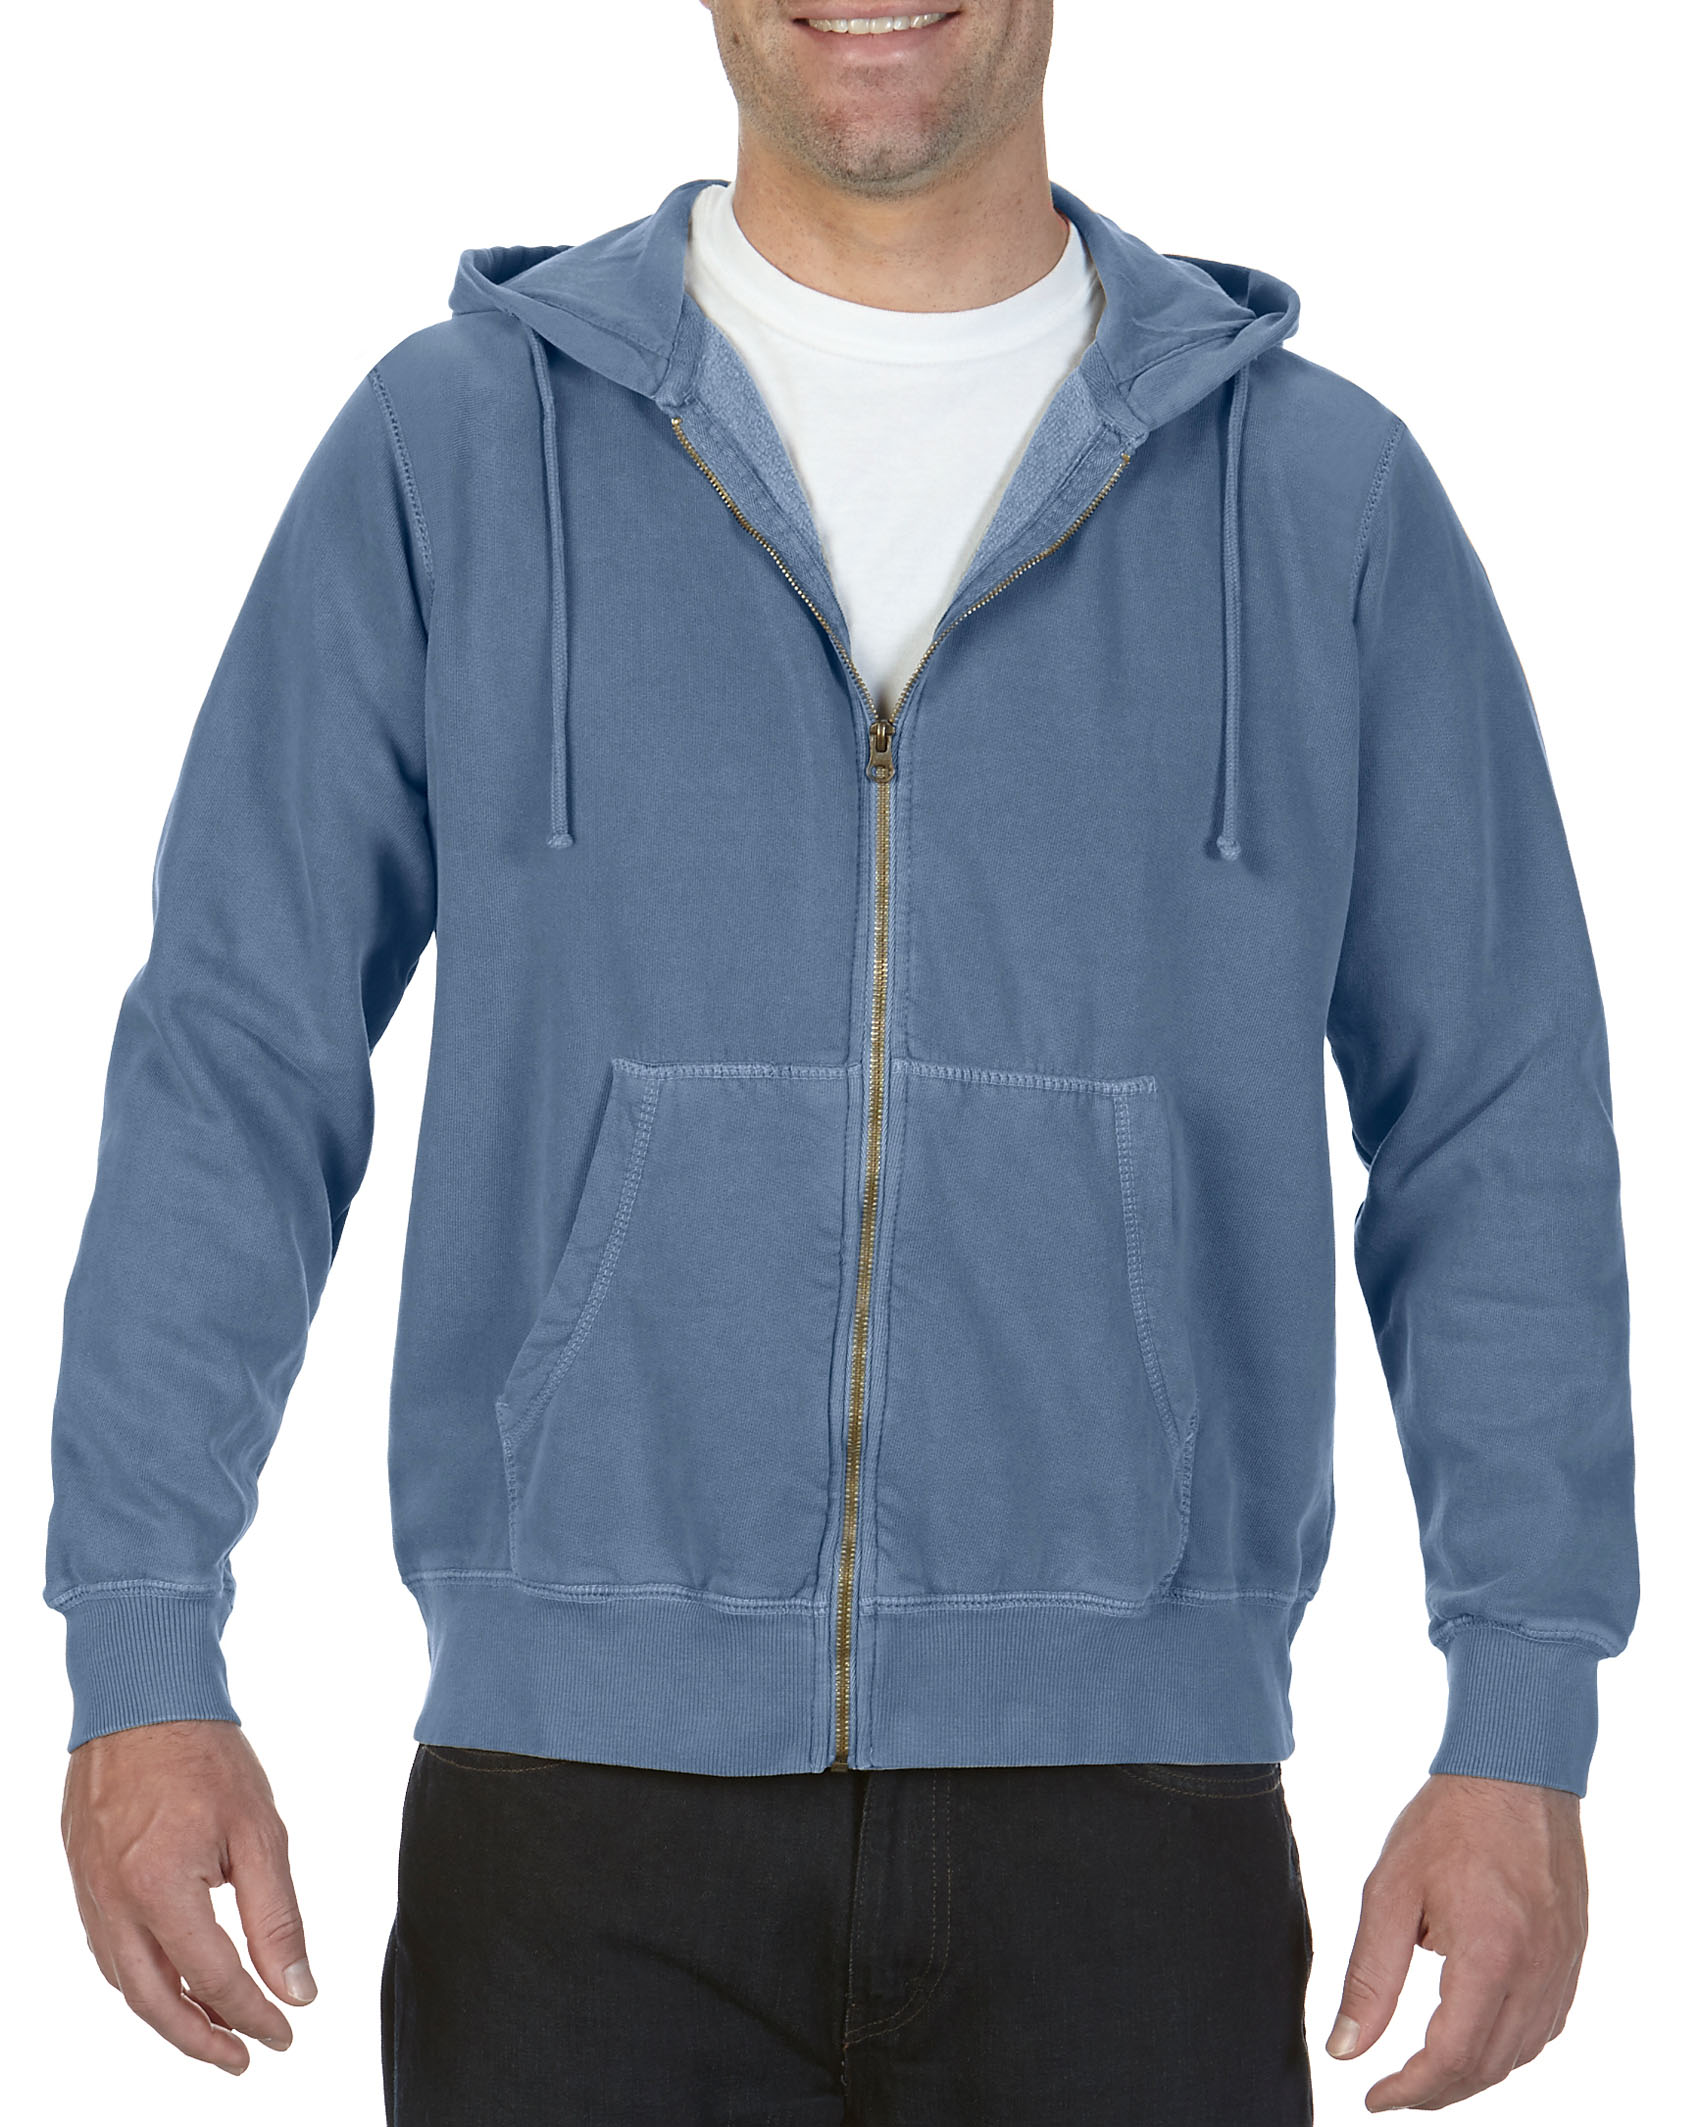 ComCol Hooded Sweatshirt Adult Full Zip